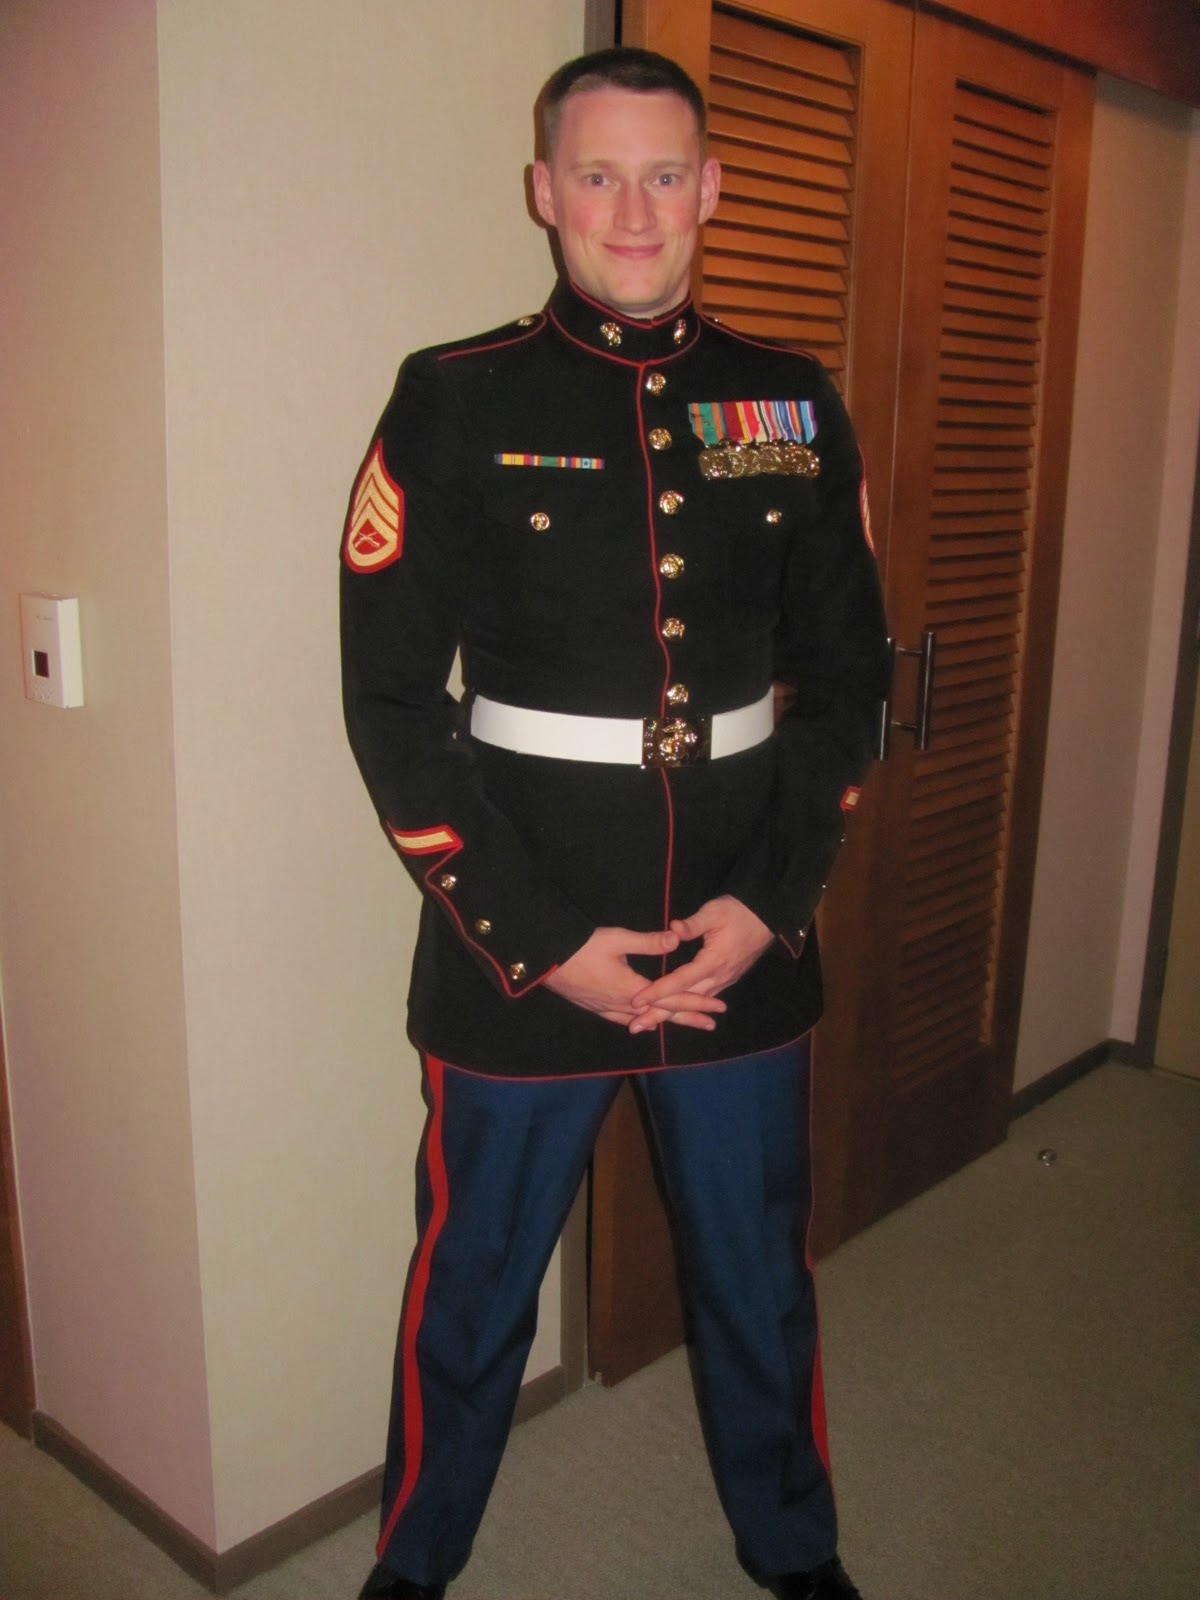 Creative An Event While Wearing Dress Blues The Marine Corps Is Asking Women